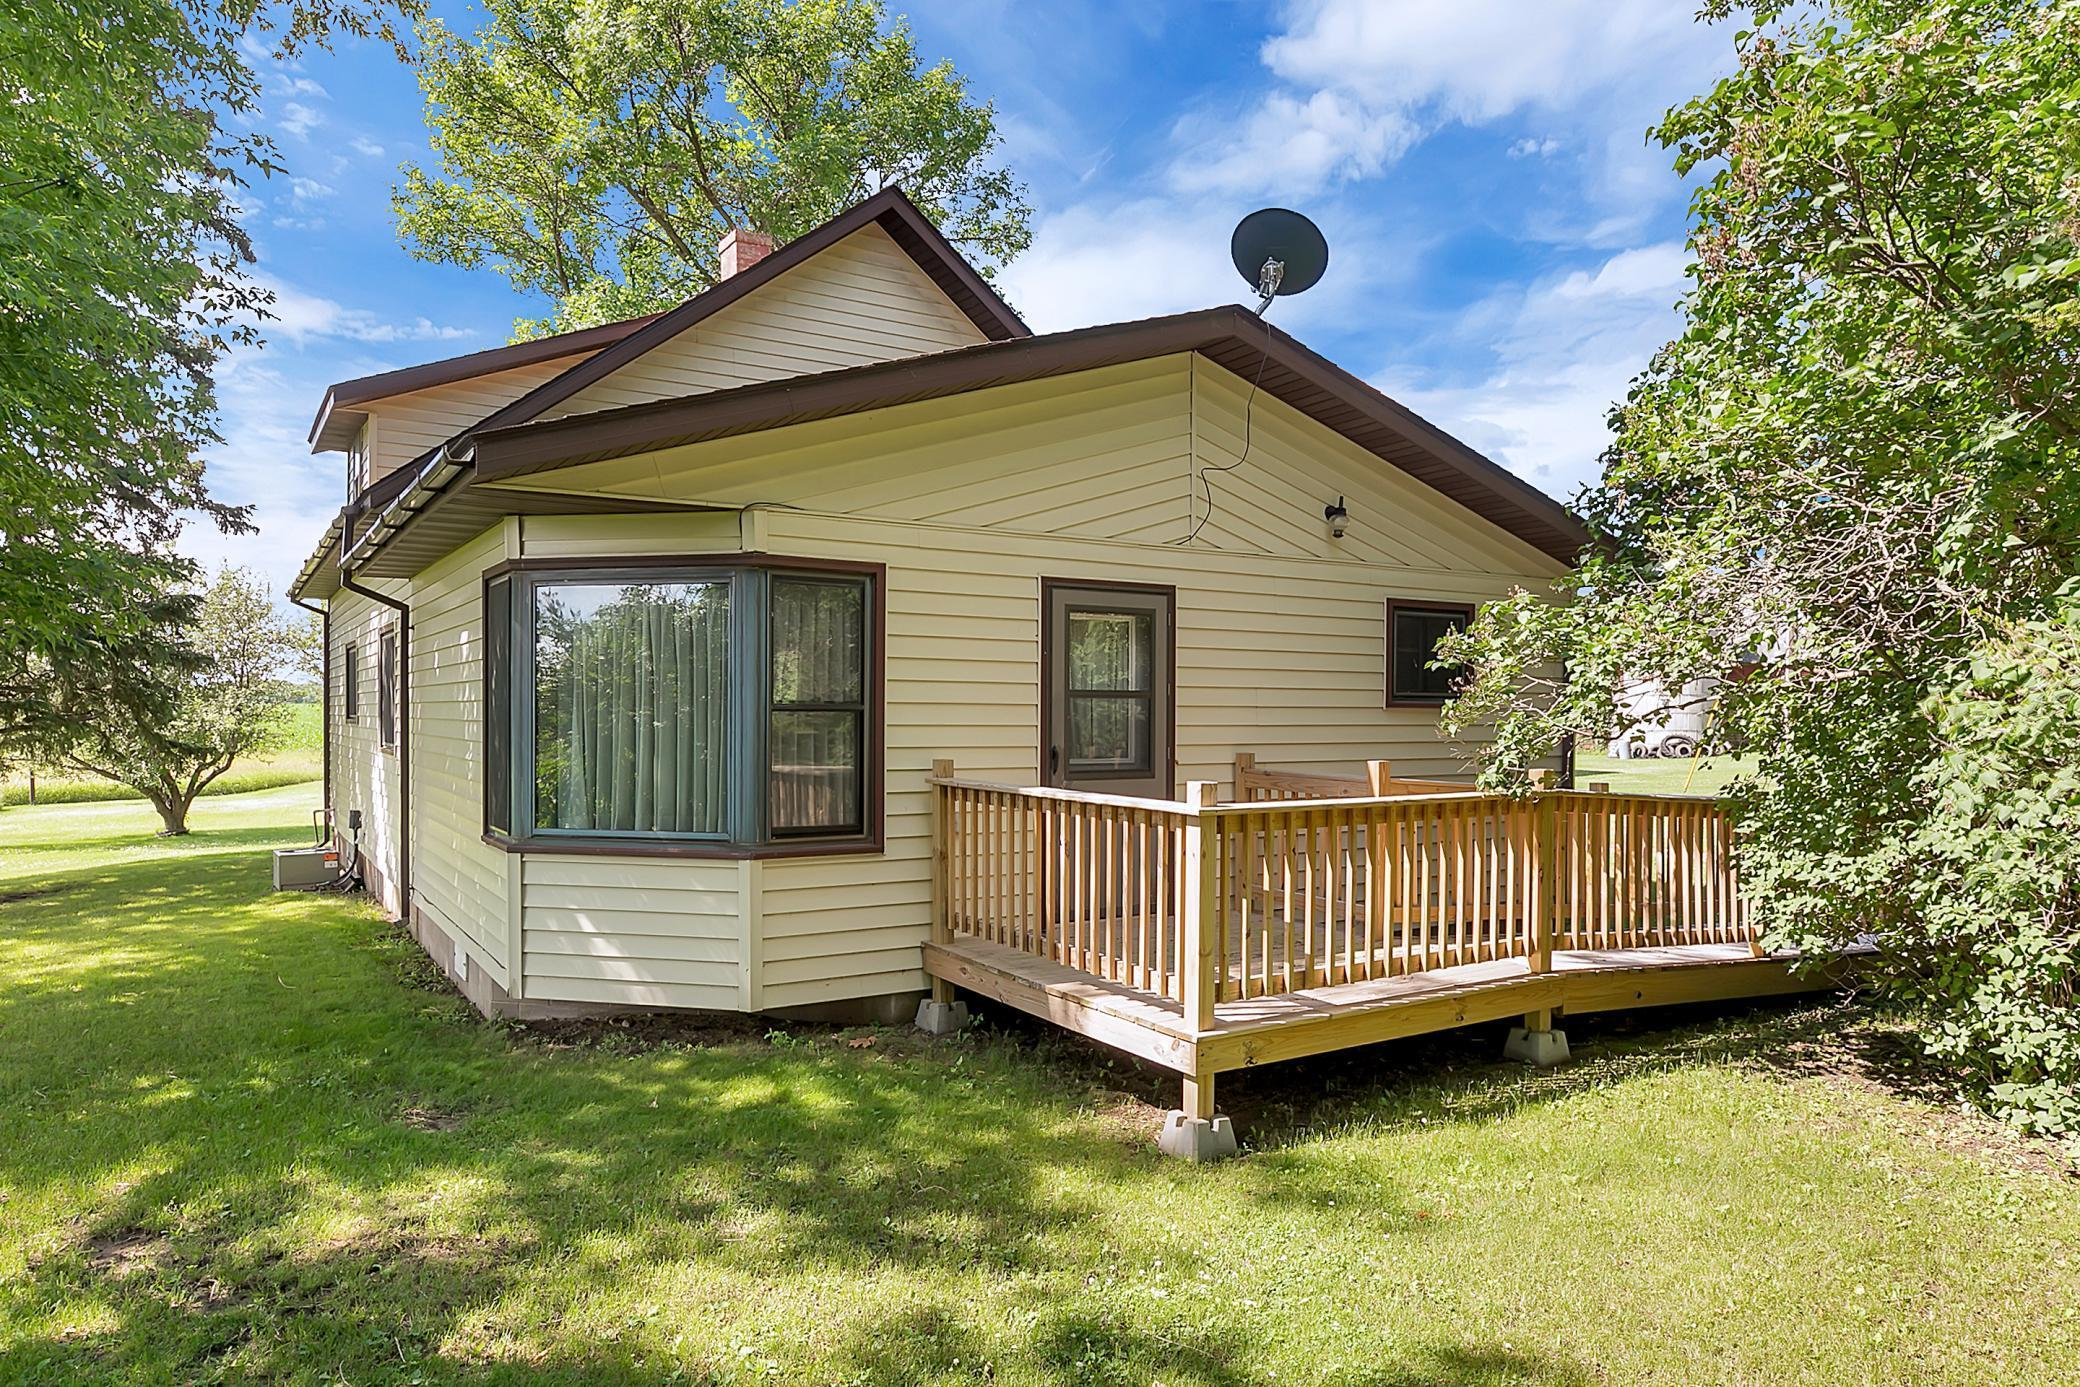 12421 90th Property Photo - Little Falls, MN real estate listing